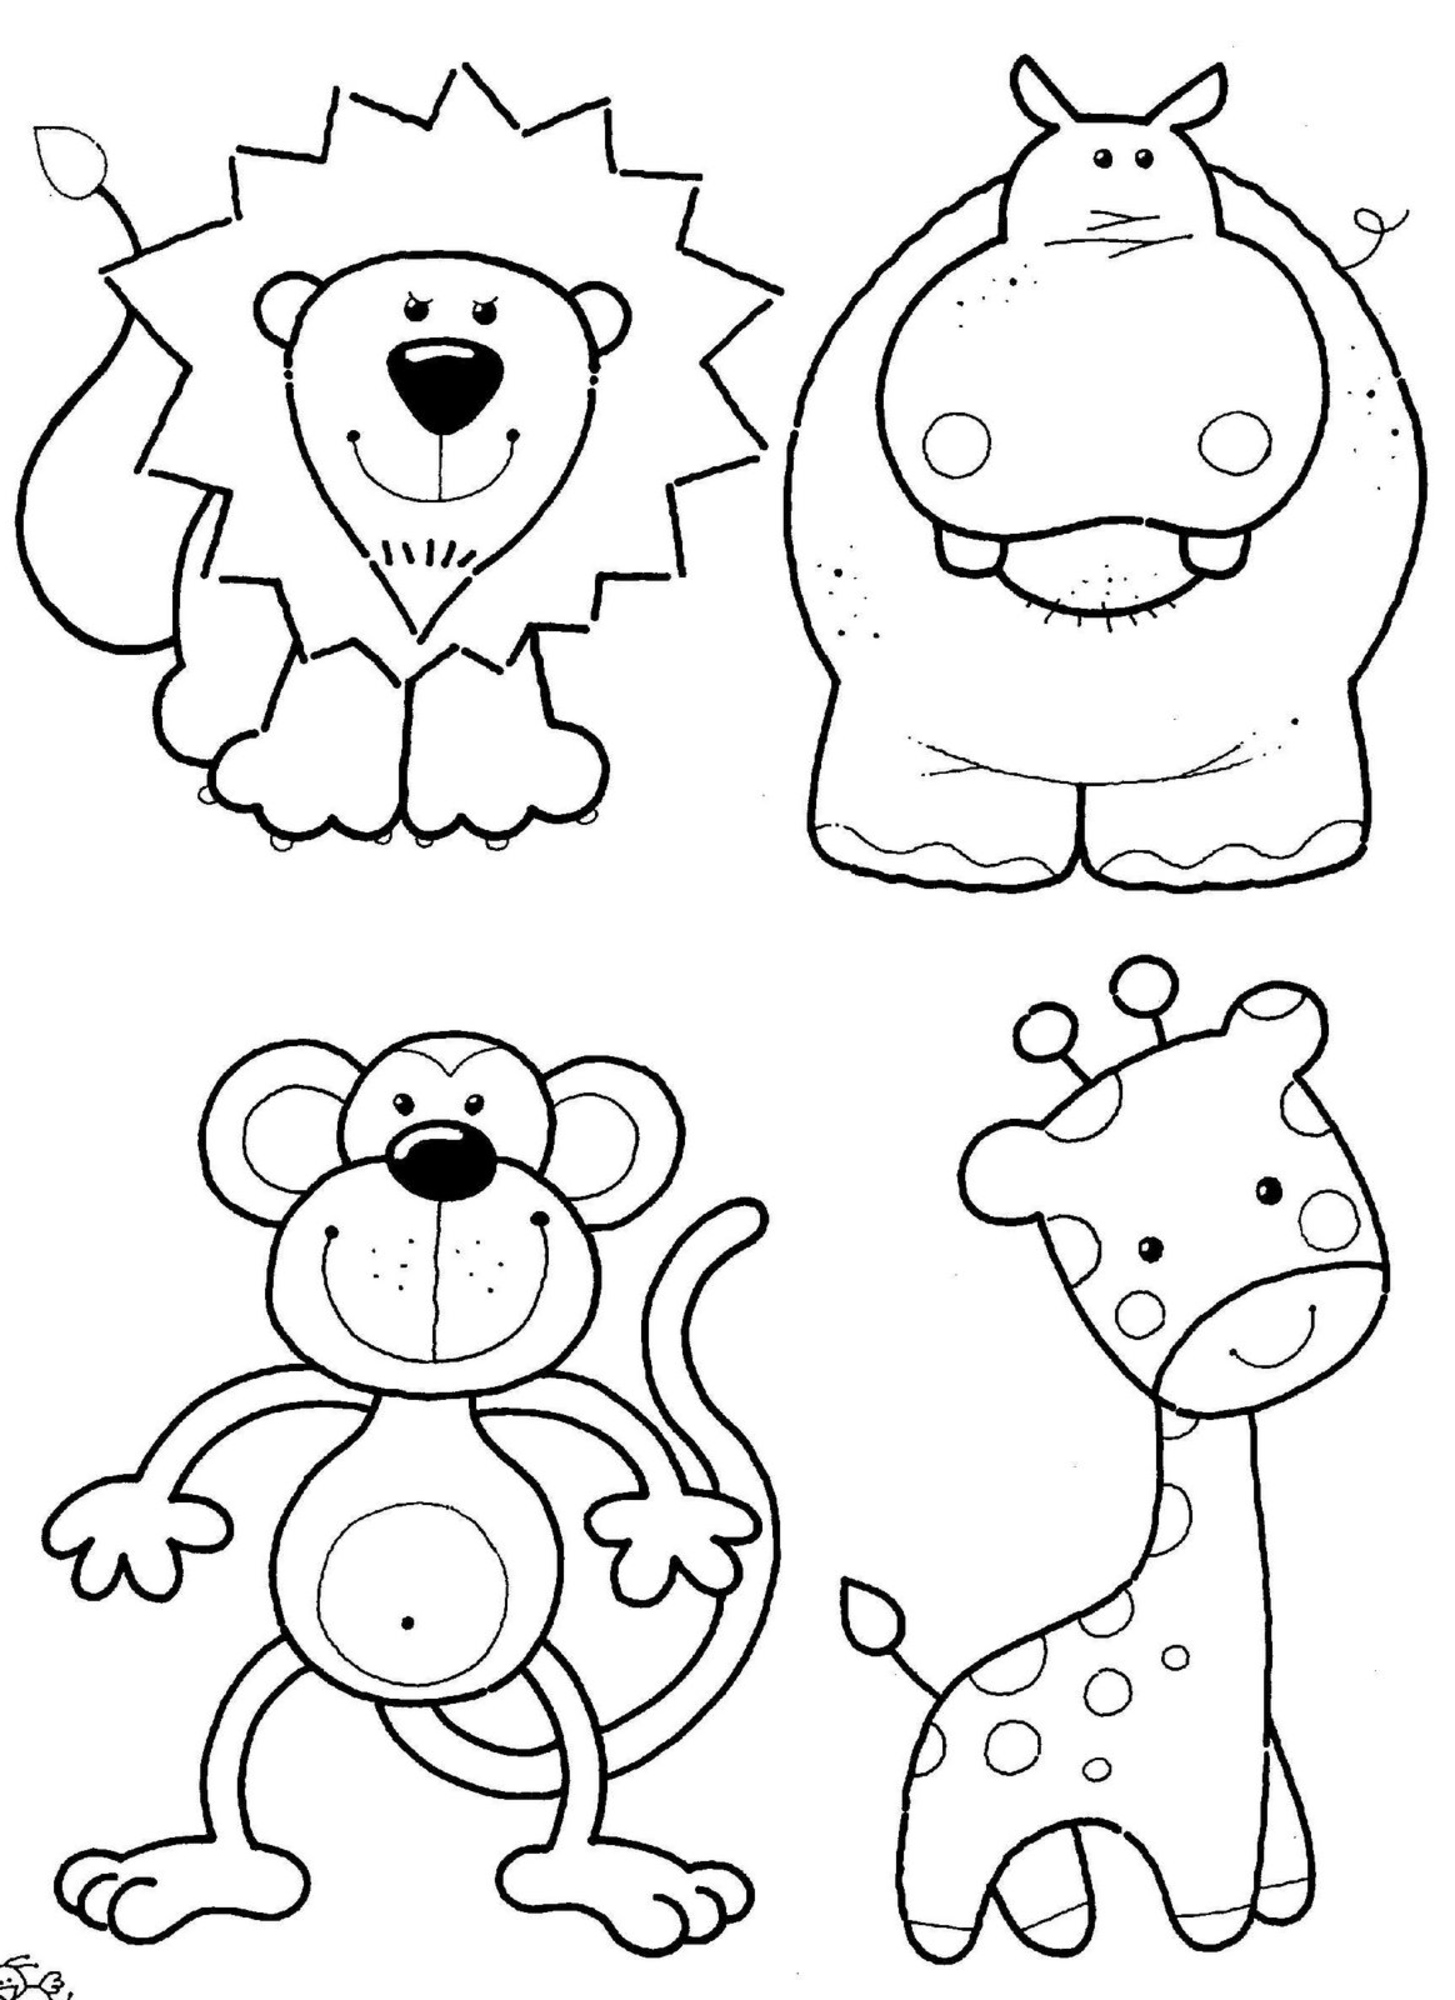 animal coloring sheets get this adult coloring pages animals camel 1 coloring animal sheets